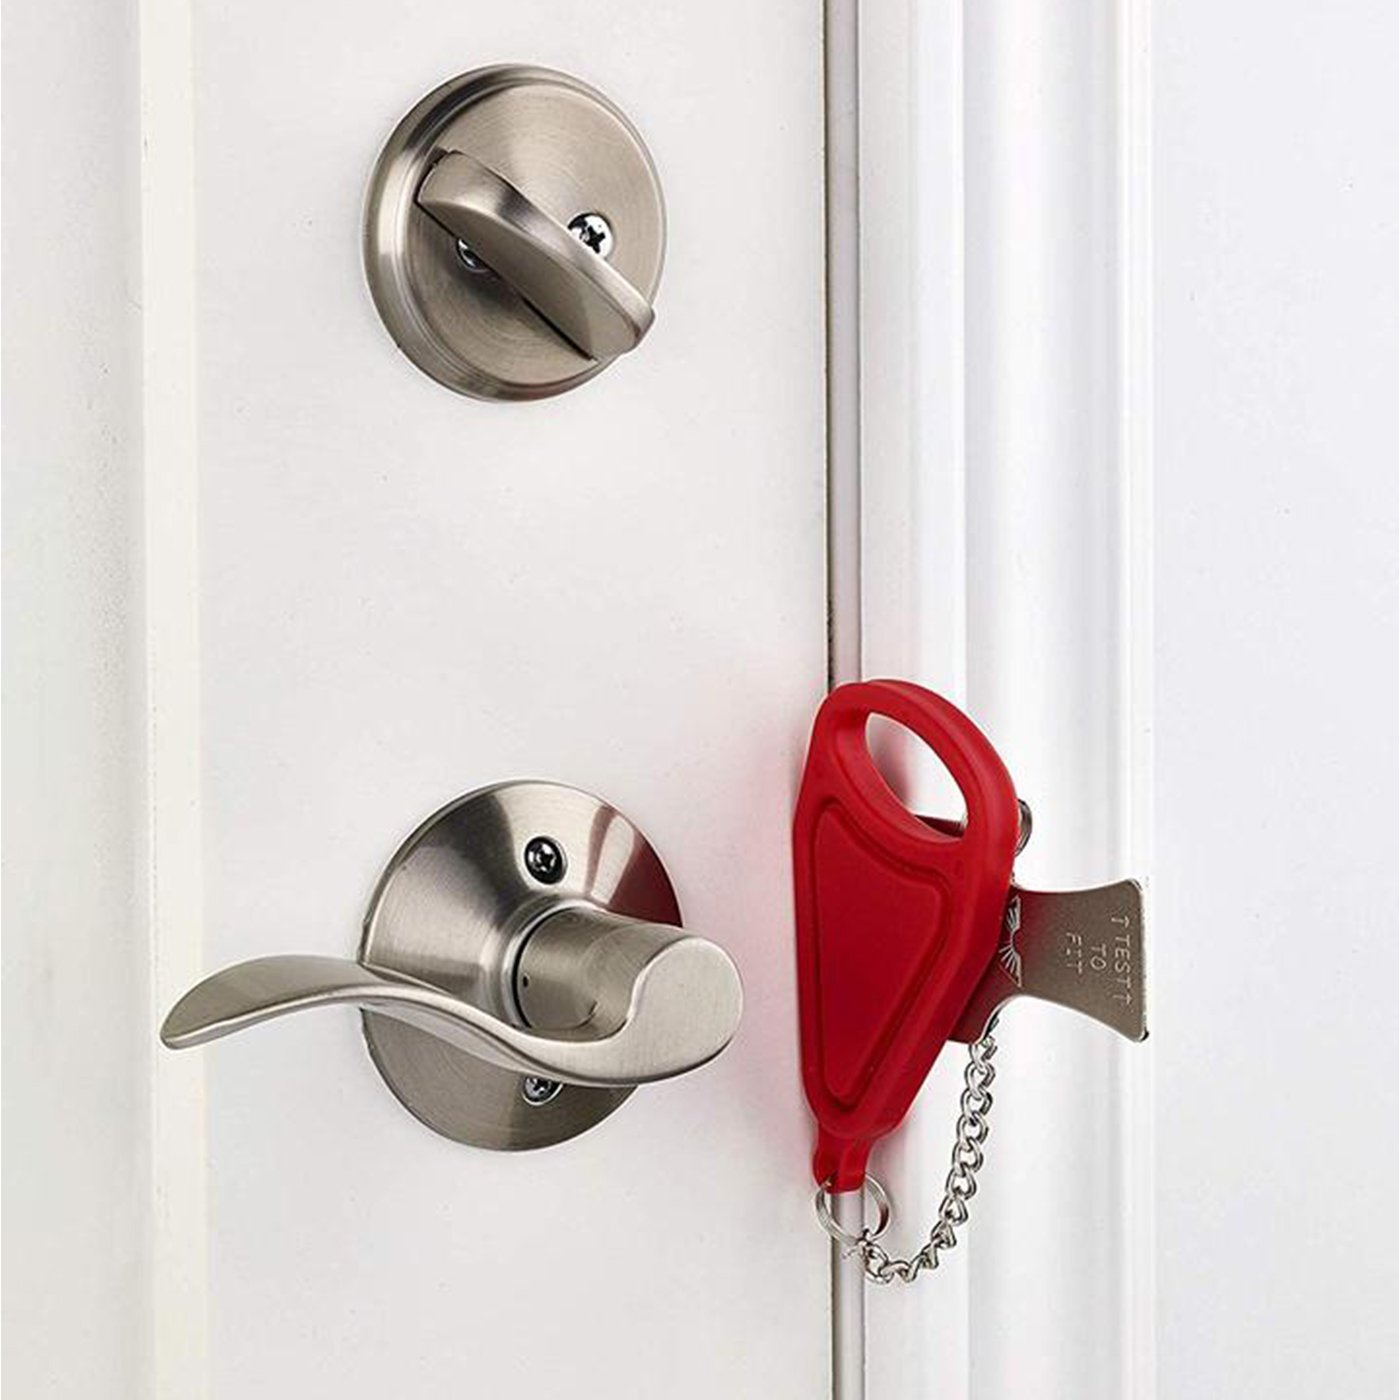 Portable Anti-intruder Lock